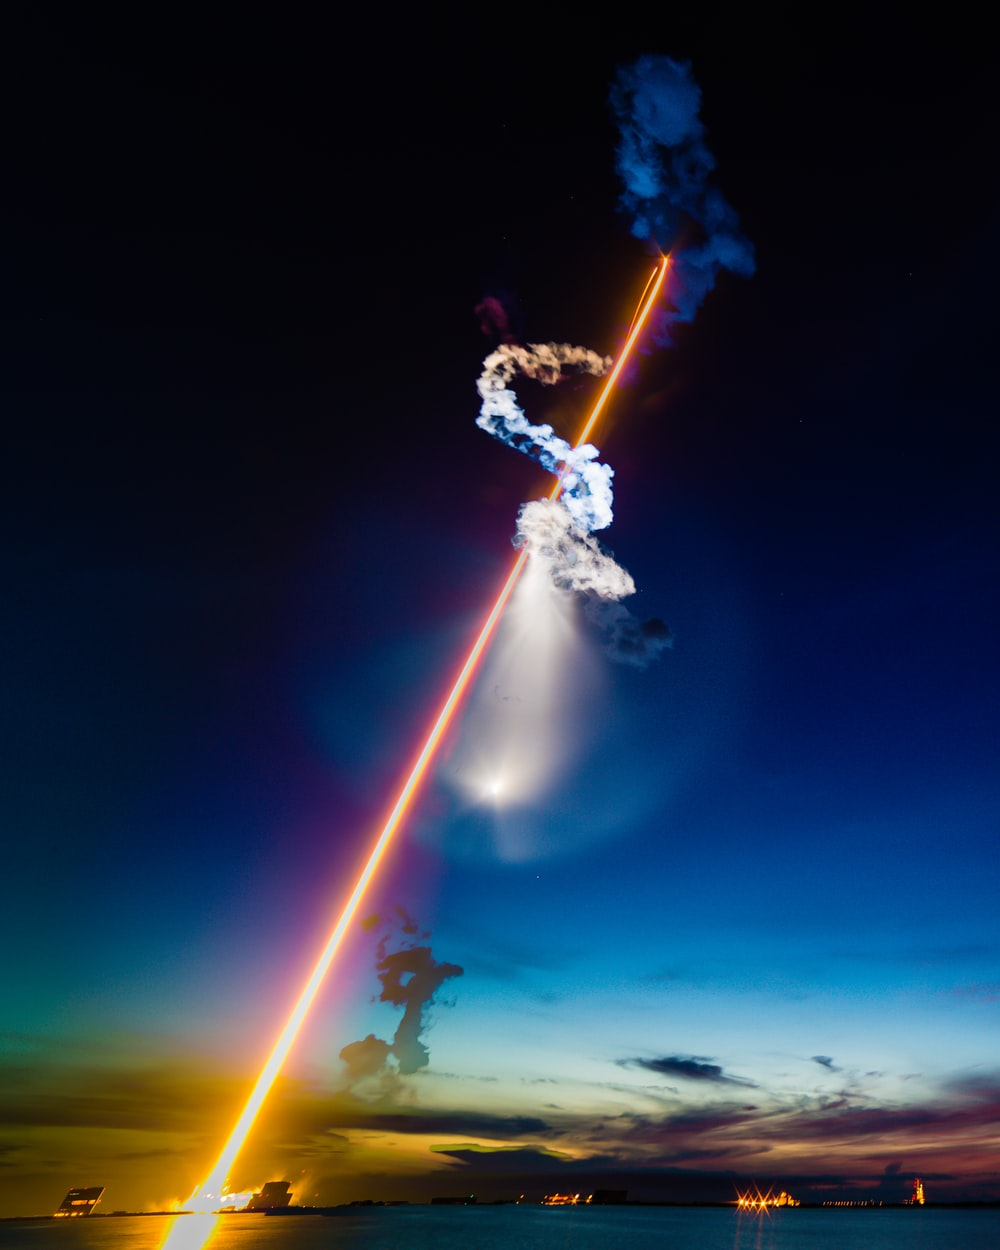 rocket launched at nighttime